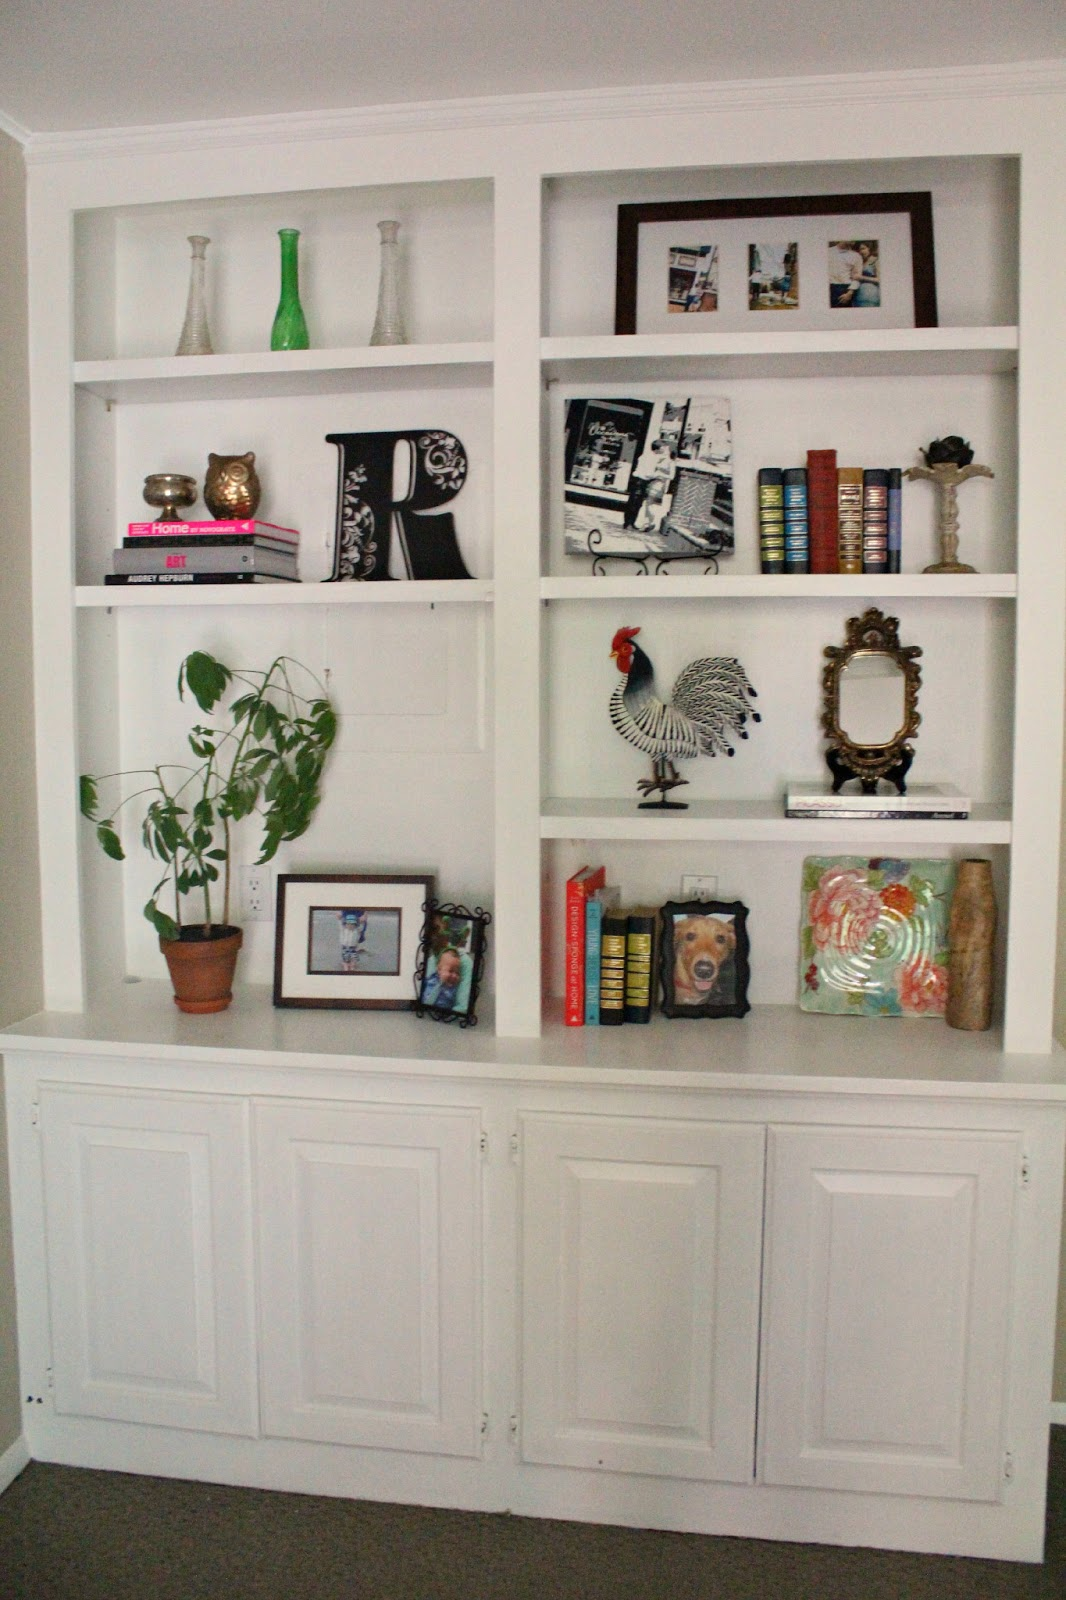 Ten June: My Living Room Built-In Bookshelves Are Styled ...